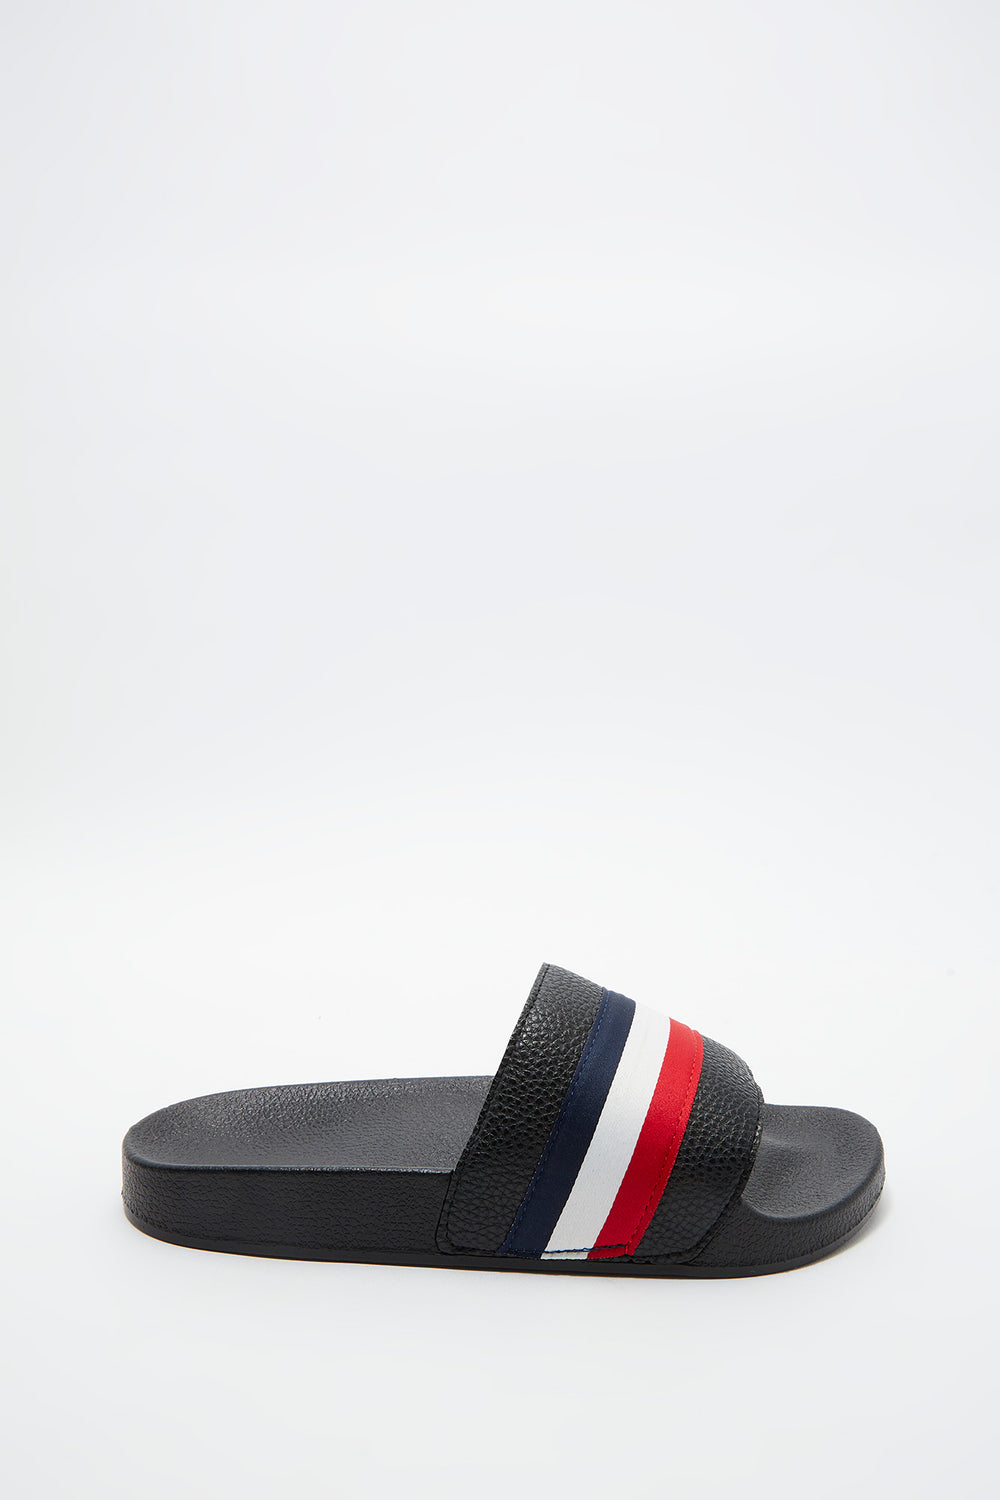 Contrast Stripe Slide Navy